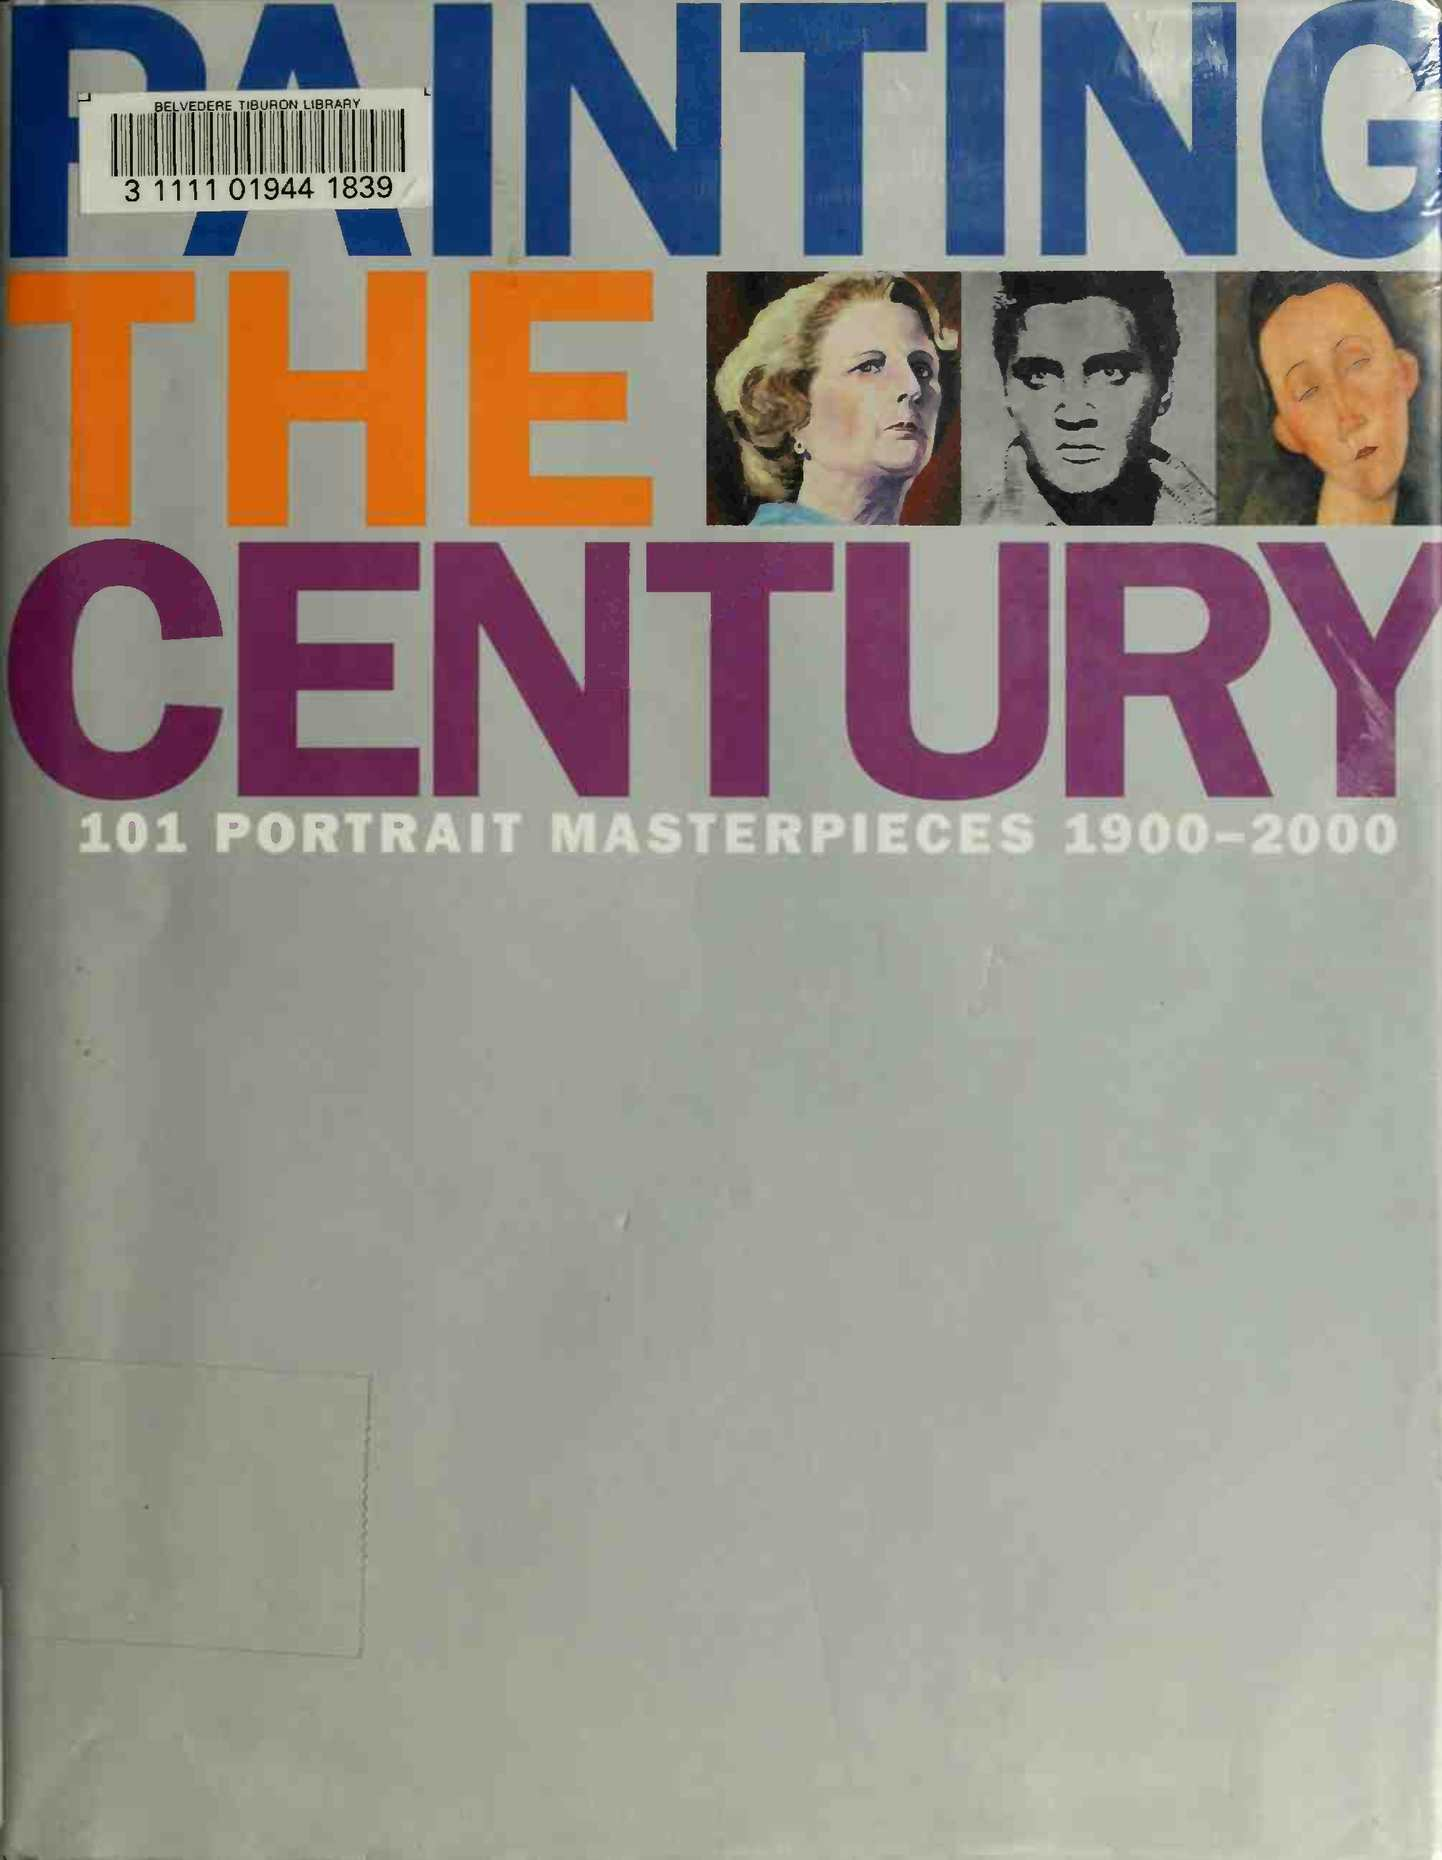 Calamo painting the century 101 portrait masterpieces art ebook fandeluxe